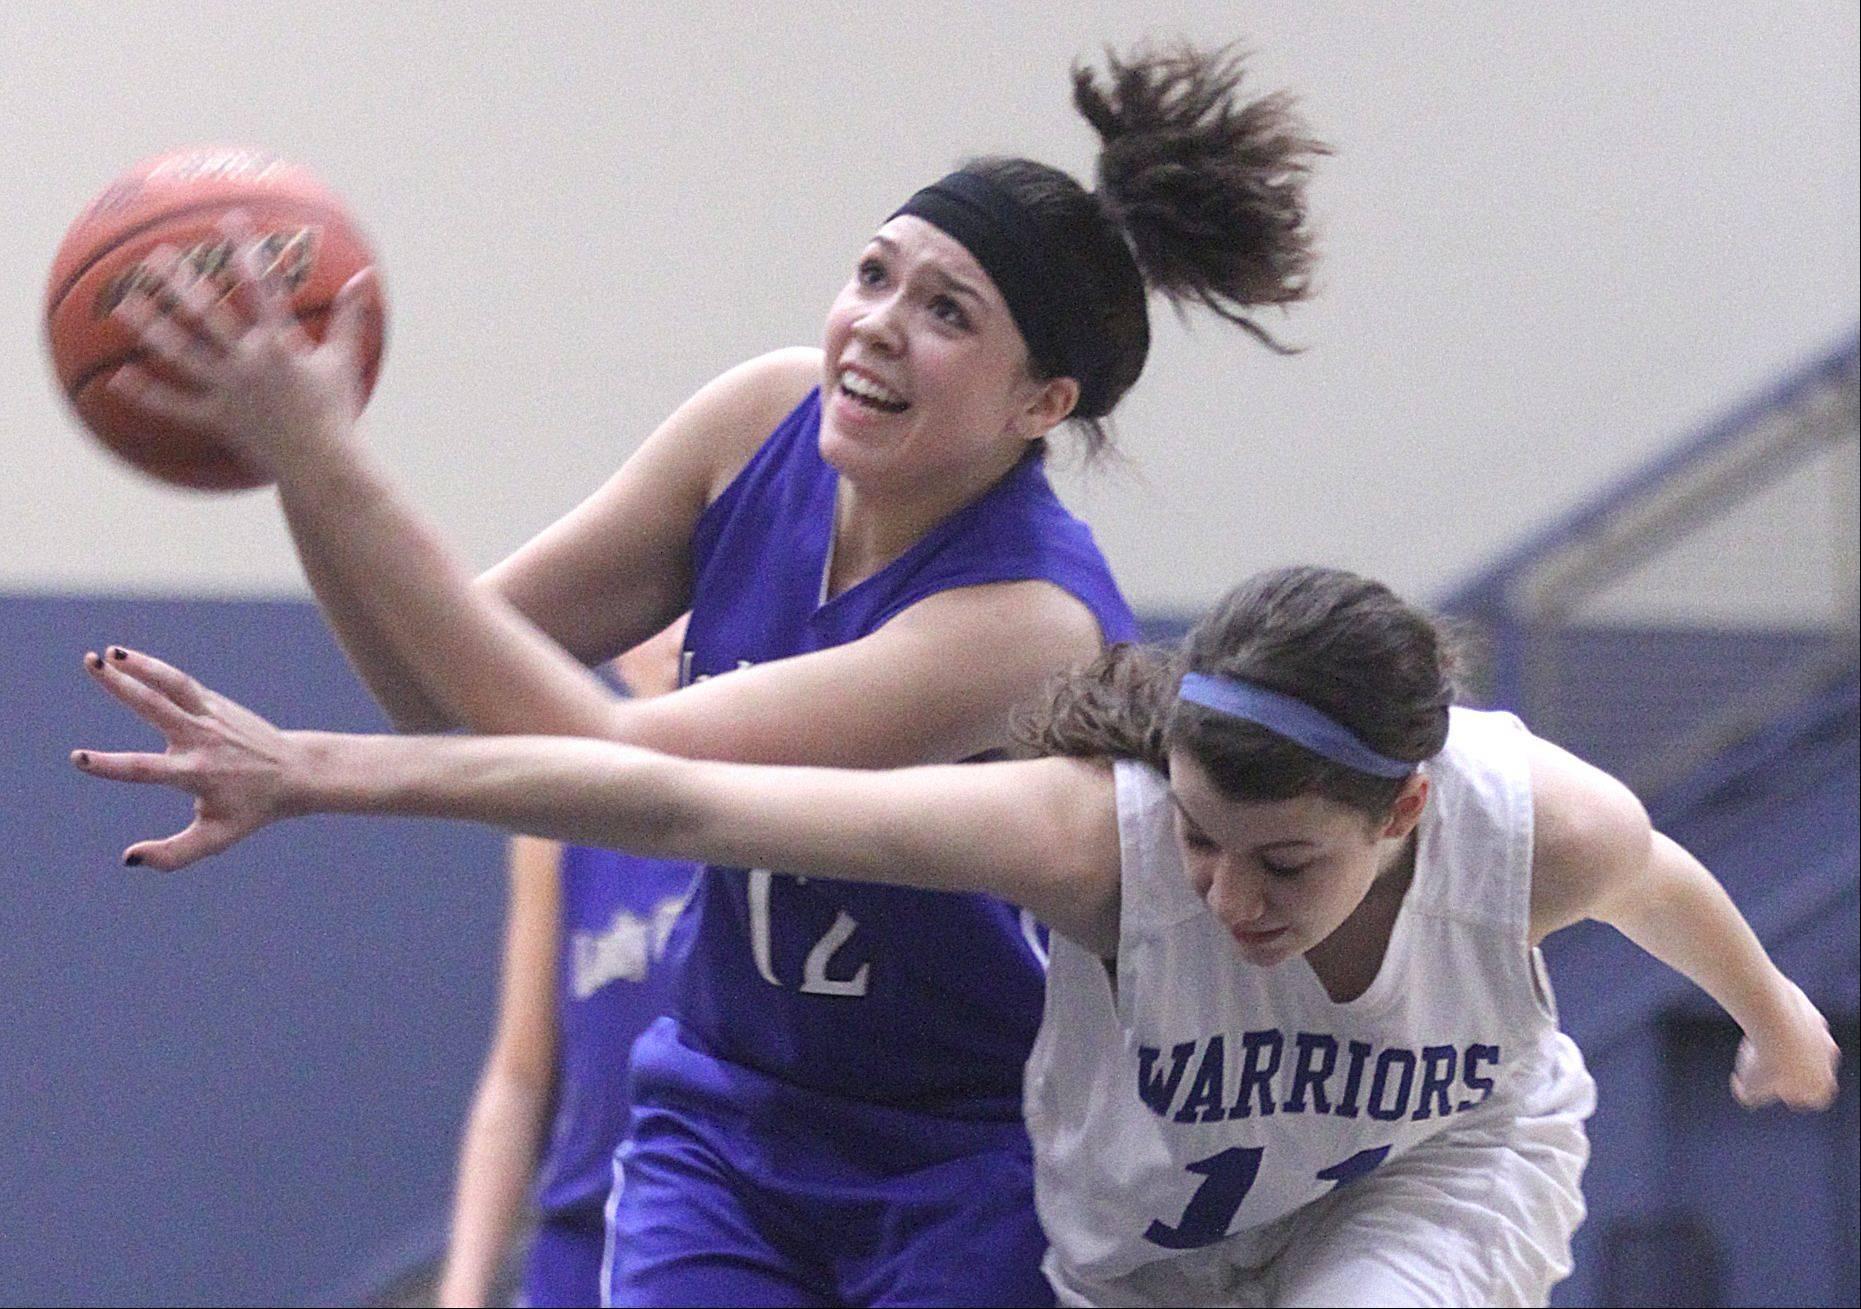 Westminster Christian's Courtney Gnan, right, tries to snag the ball from Christian Liberty Academy's Shelbi Hernandez, left, during Friday's regional championship game at Harvest Christian Academy in Elgin.